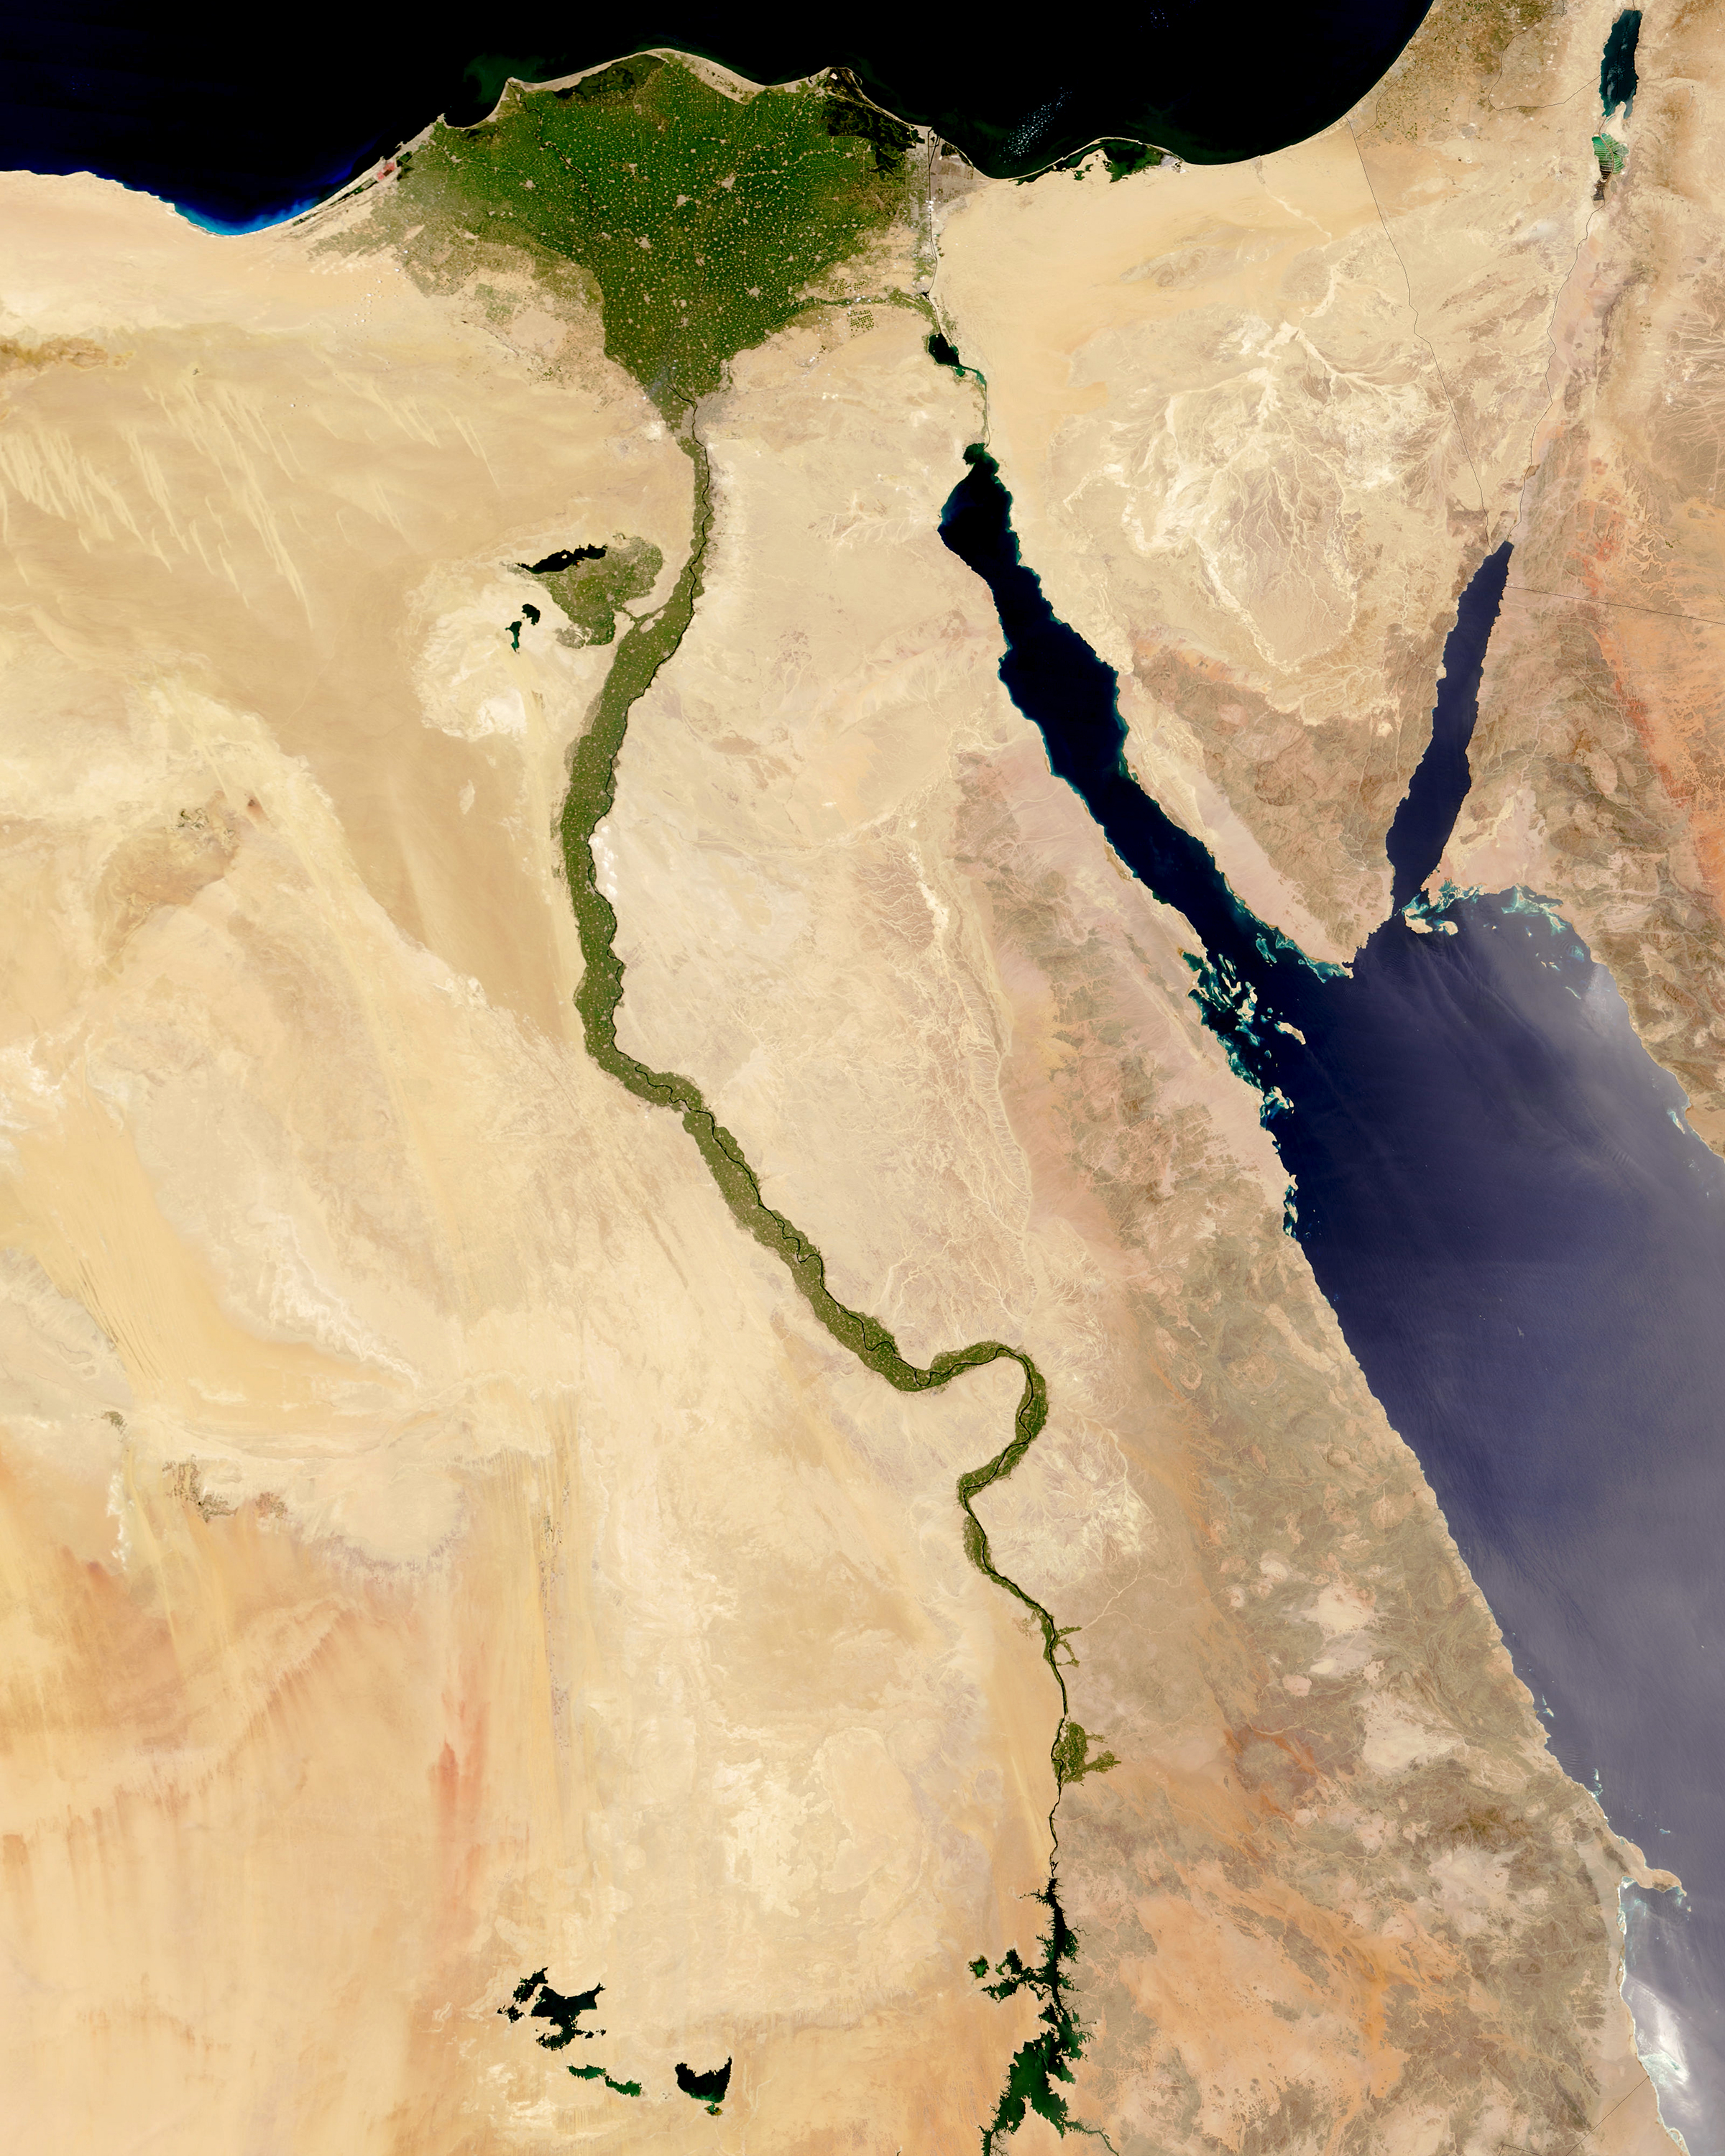 """Another 2018 favorite was this amazing Overview of the Nile River in Egypt. The Nile is commonly regarded as the longest river in the world, flowing for 4,258 miles (6,853 km) over 11 countries in northeastern Africa. Civilizations since ancient times have depended on the waters of the Nile to flood and fertilize surrounding desert lands. Check back tomorrow for another popular Overview from 2018!  29°20'11.0""""N, 31°13'28.8""""E  Source imagery: DigitalGlobe"""